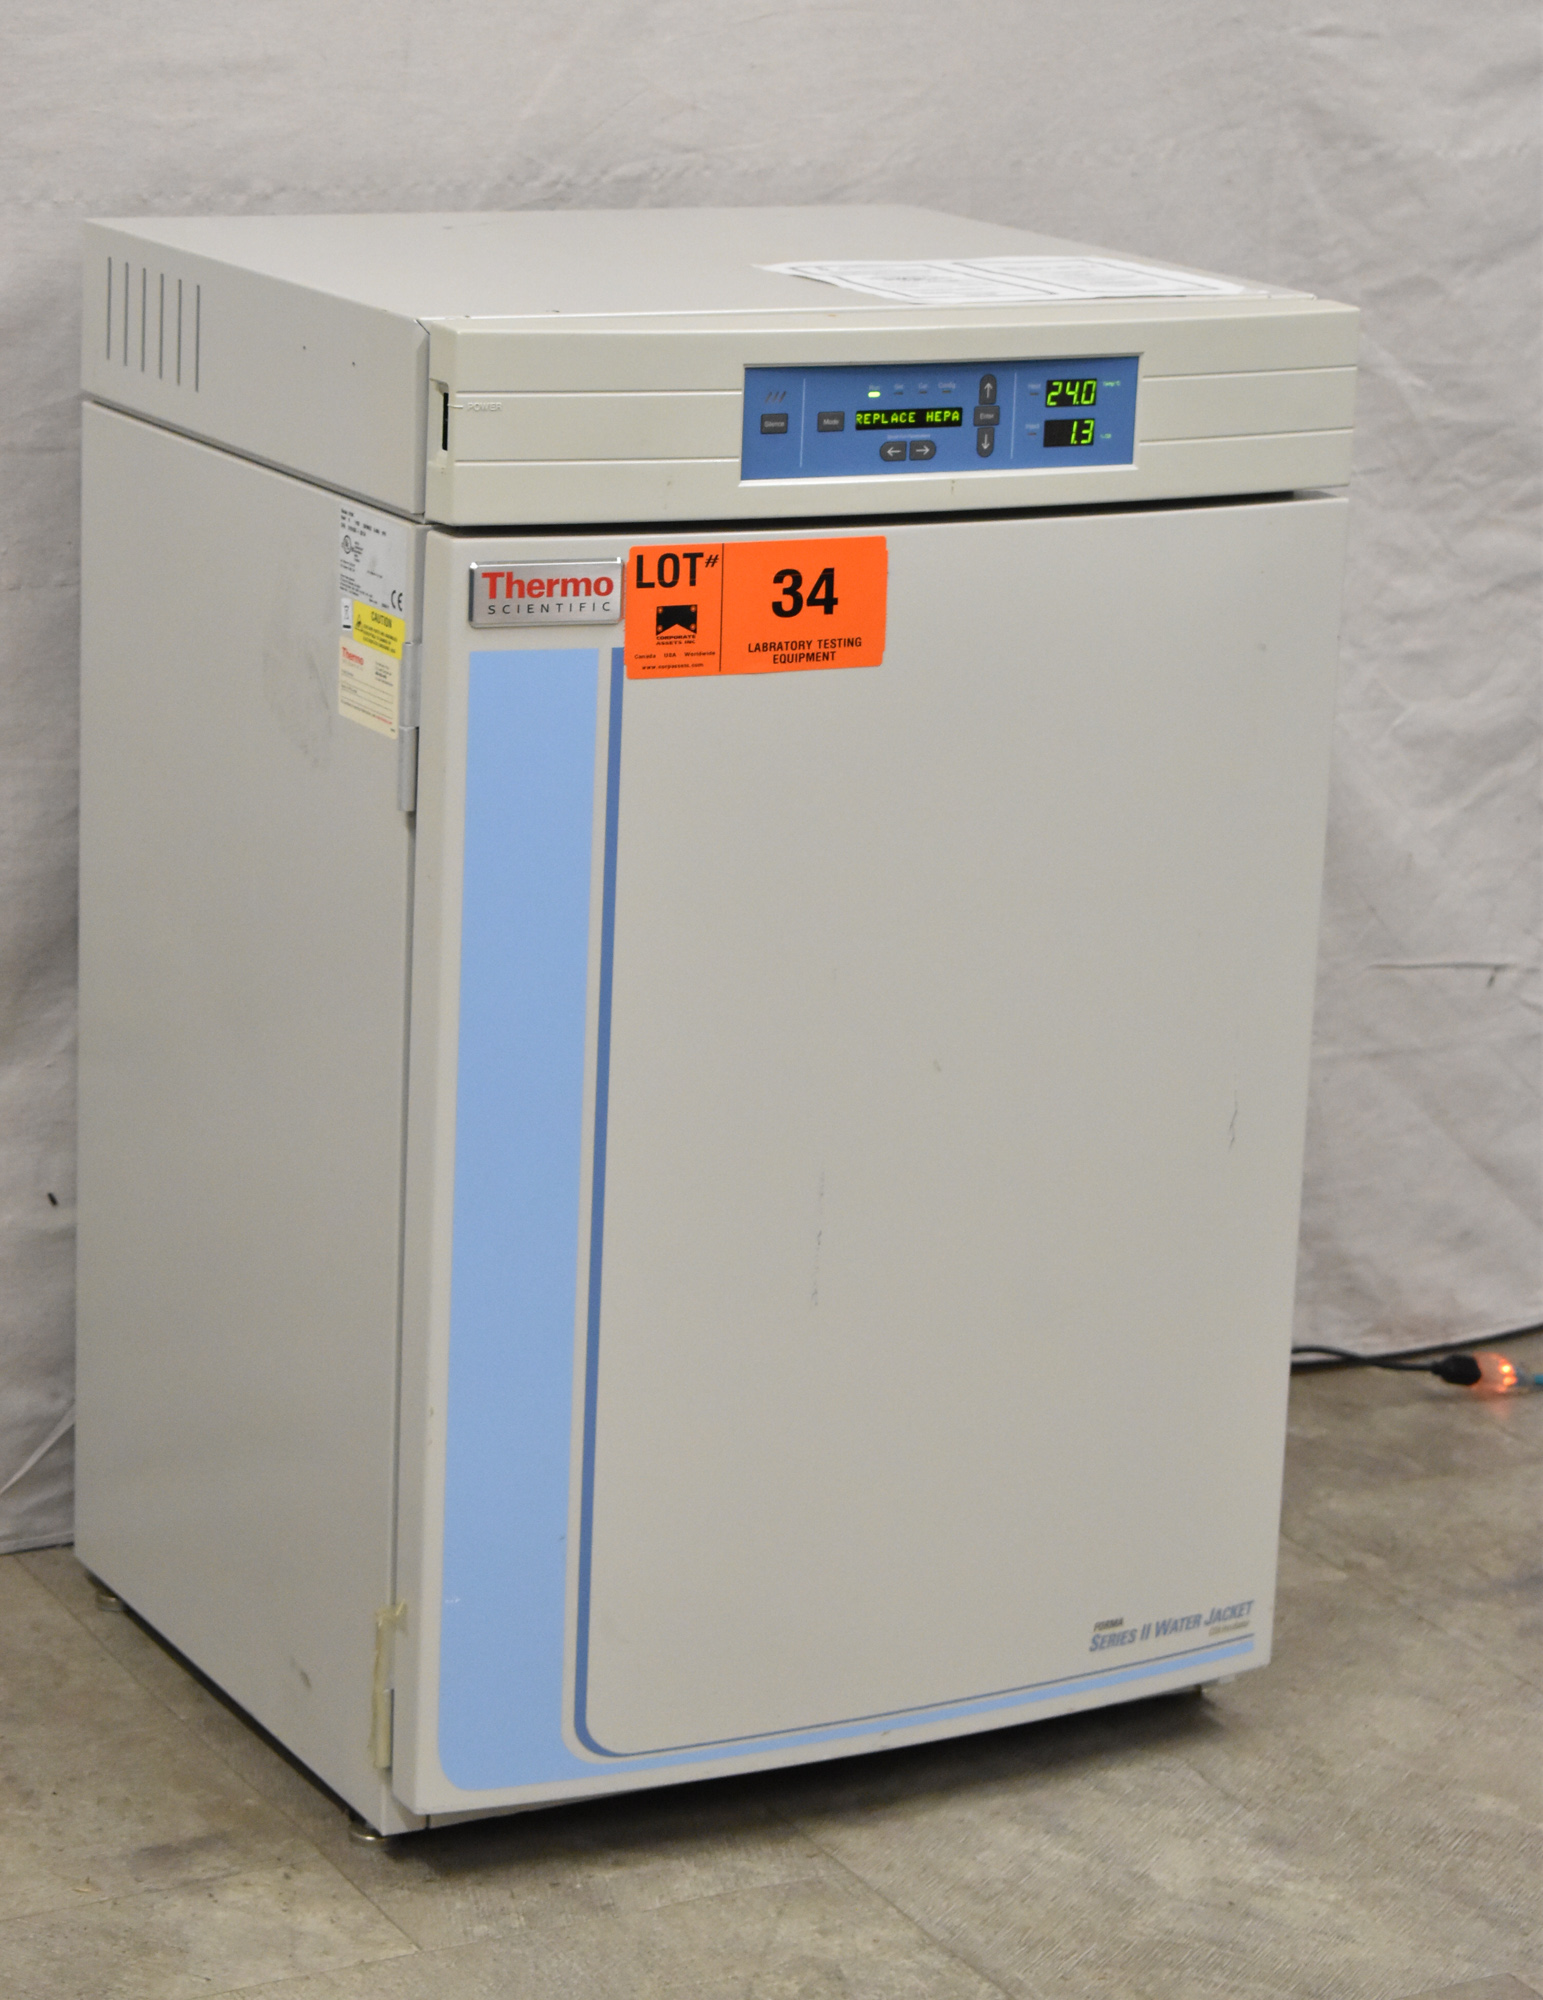 THERMO SCIENTIFIC 3130 FORMA SERIES II WATER JACKET CO2 INCUBATOR WITH DIGITAL MICROPROCESSOR - Image 2 of 8